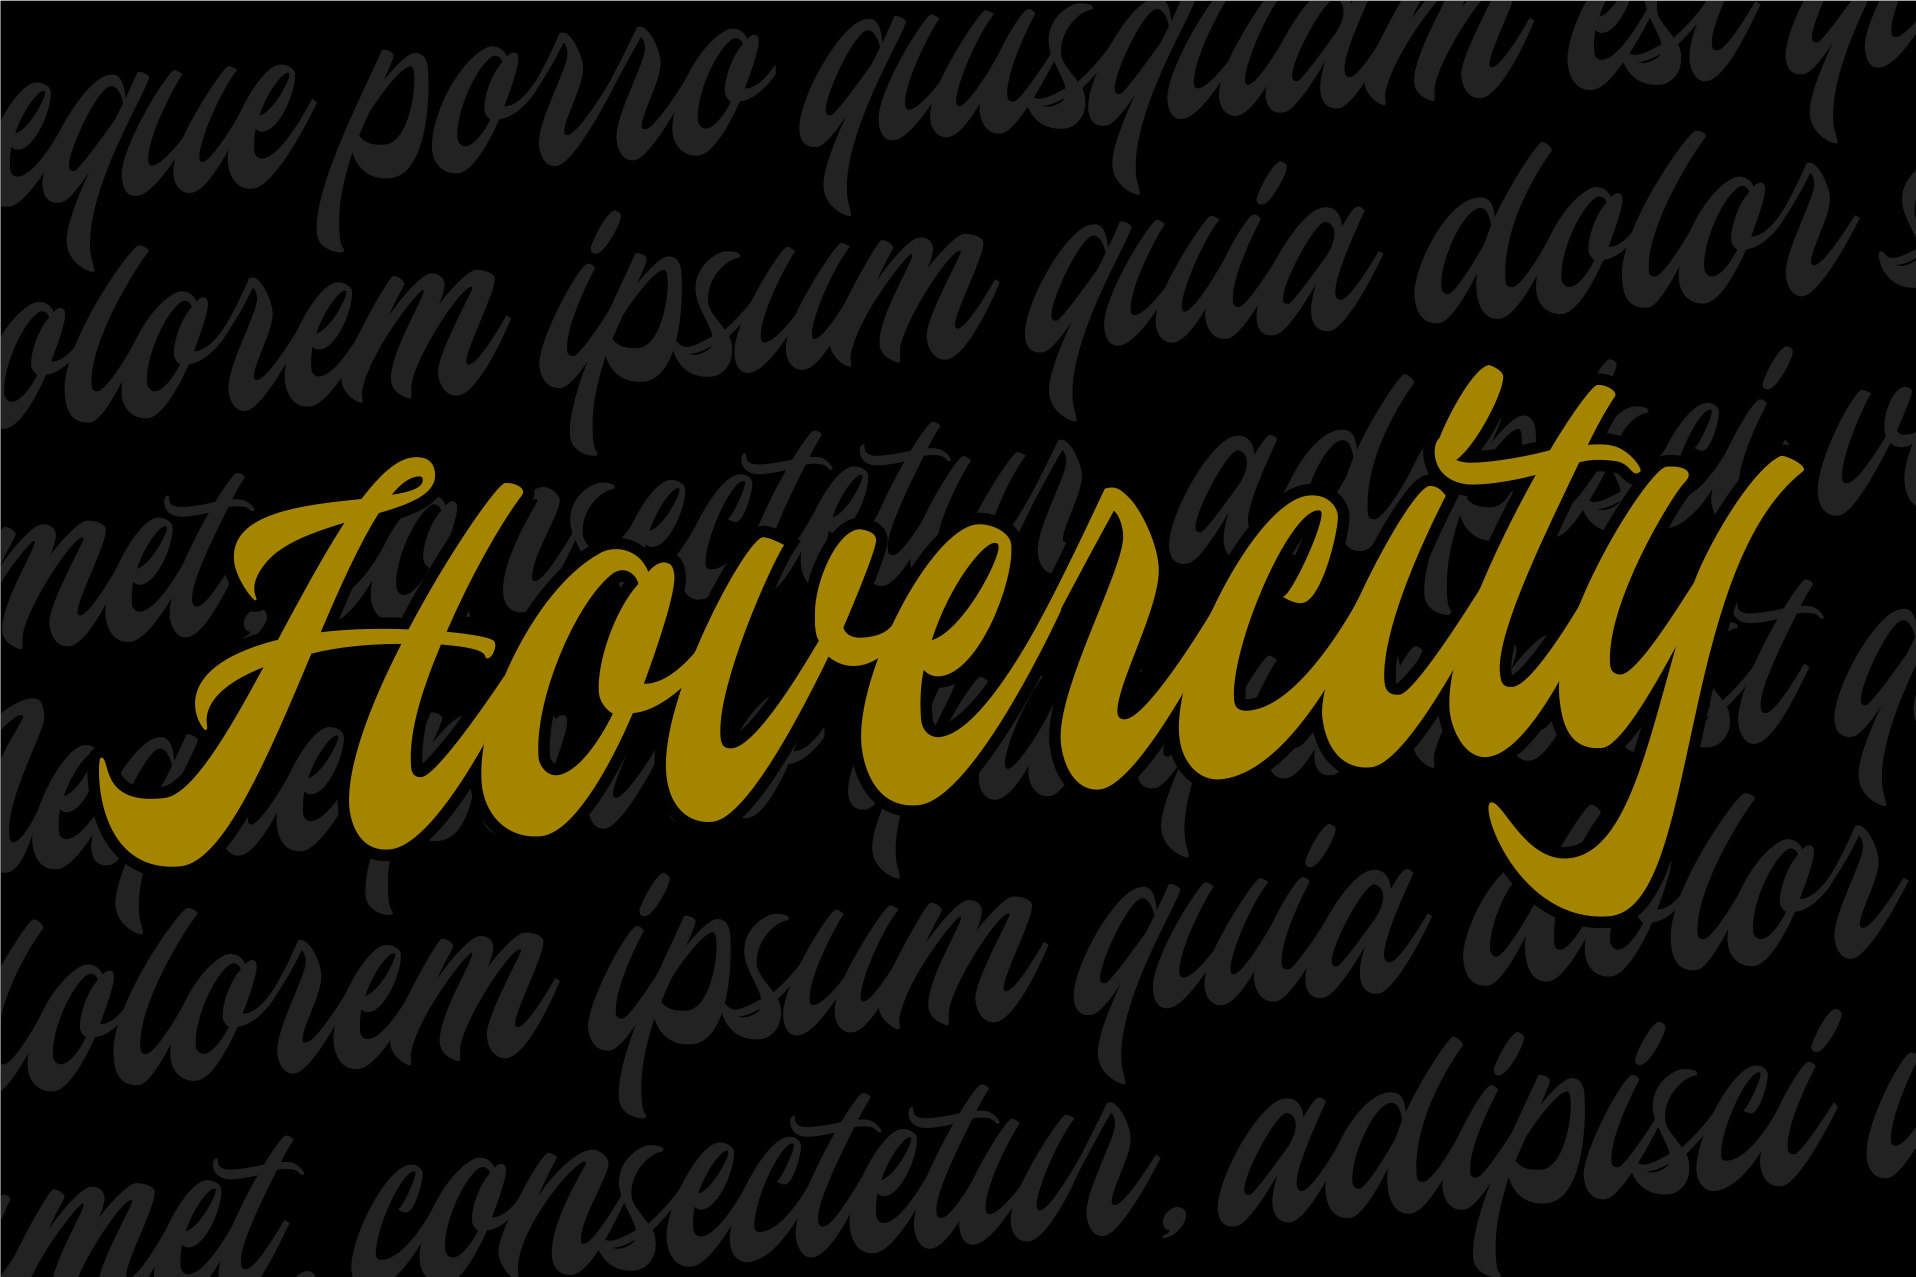 Hovercity script font example image 7